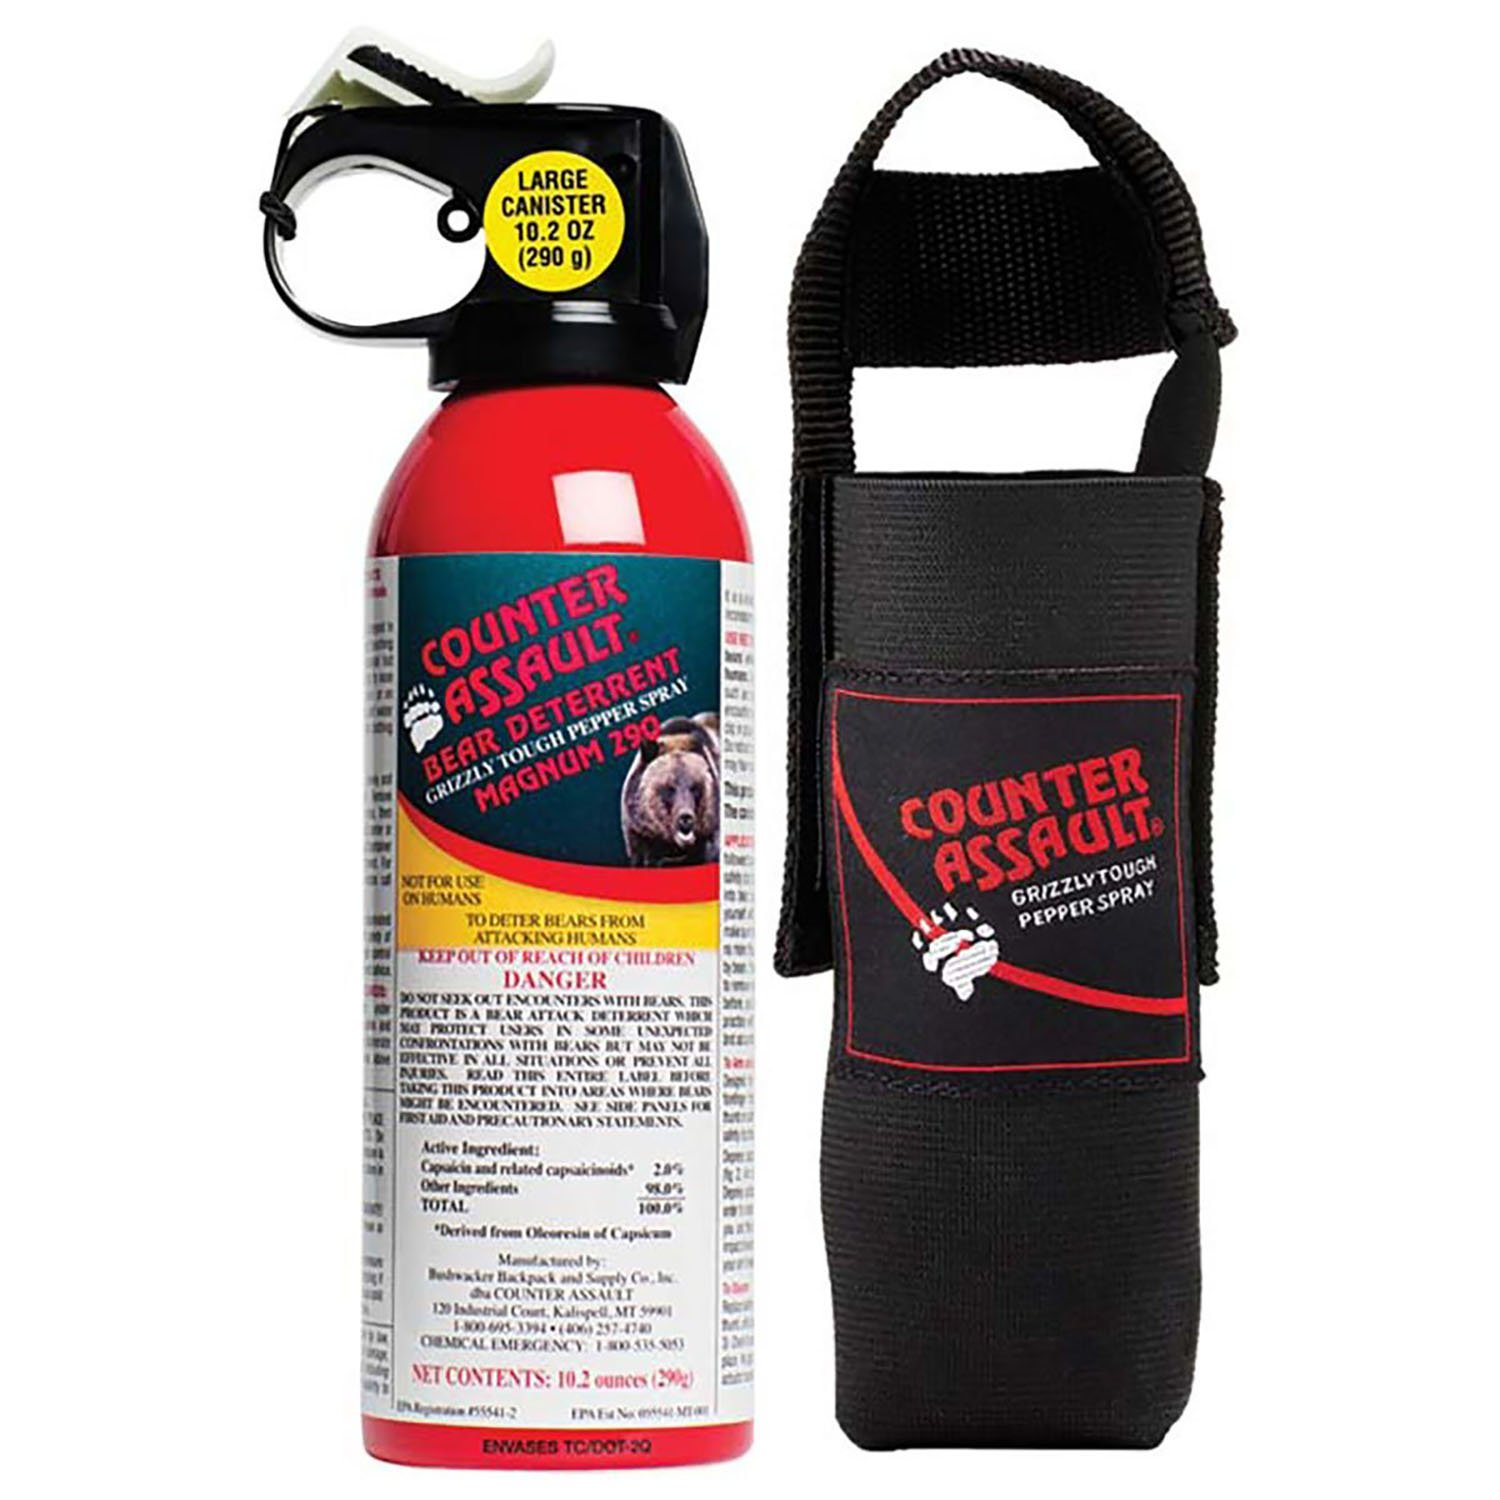 2. Counter Assault Bear Deterrent 10.2 oz.